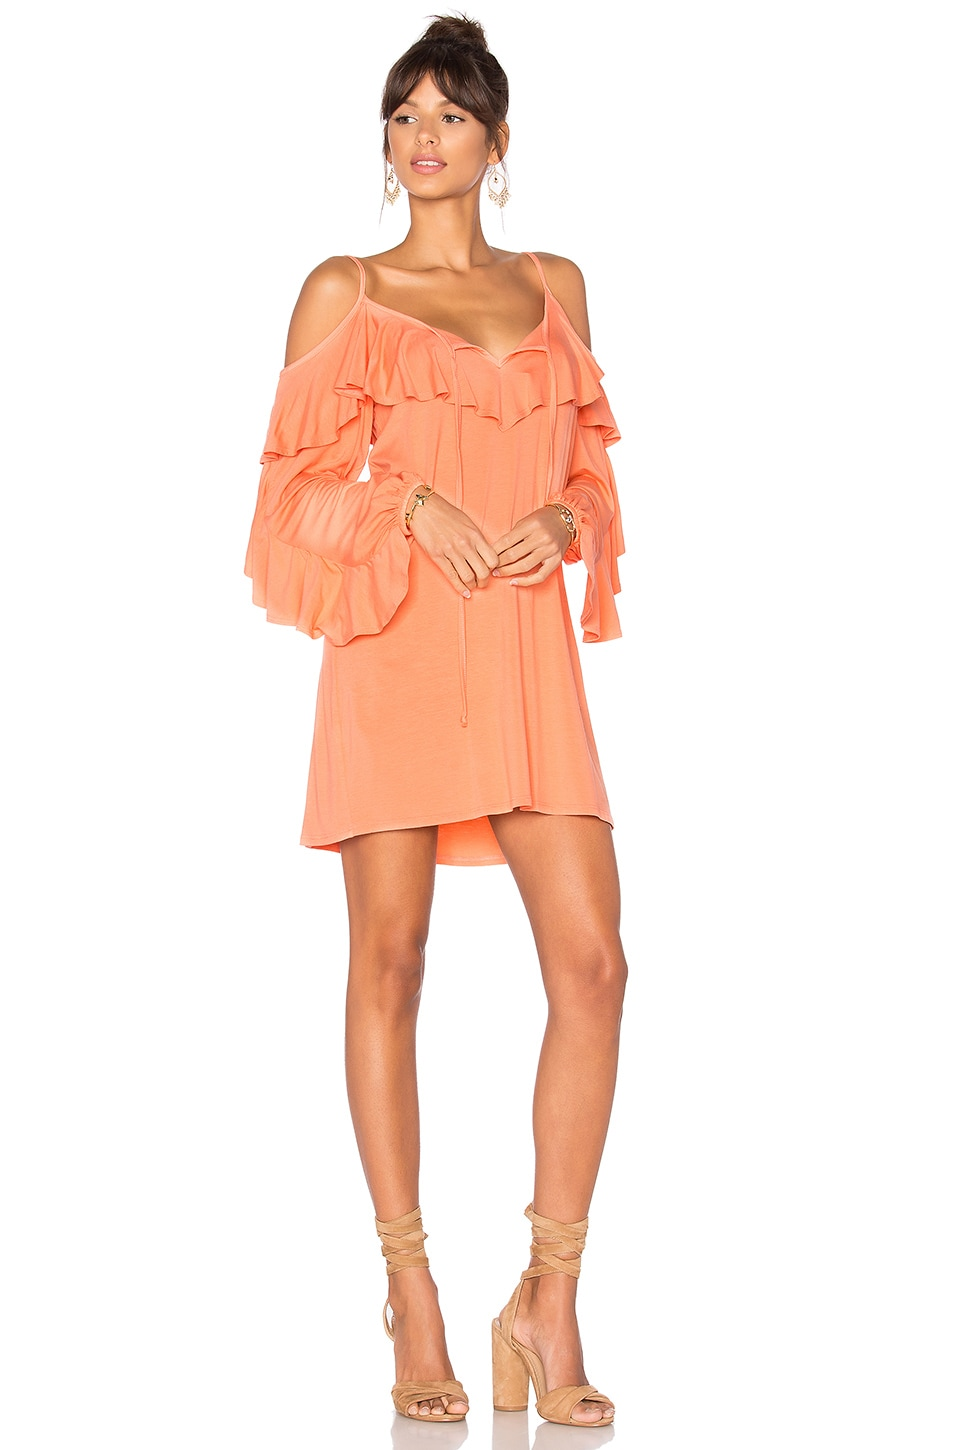 VAVA by Joy Han Shauna Dress in Light Coral